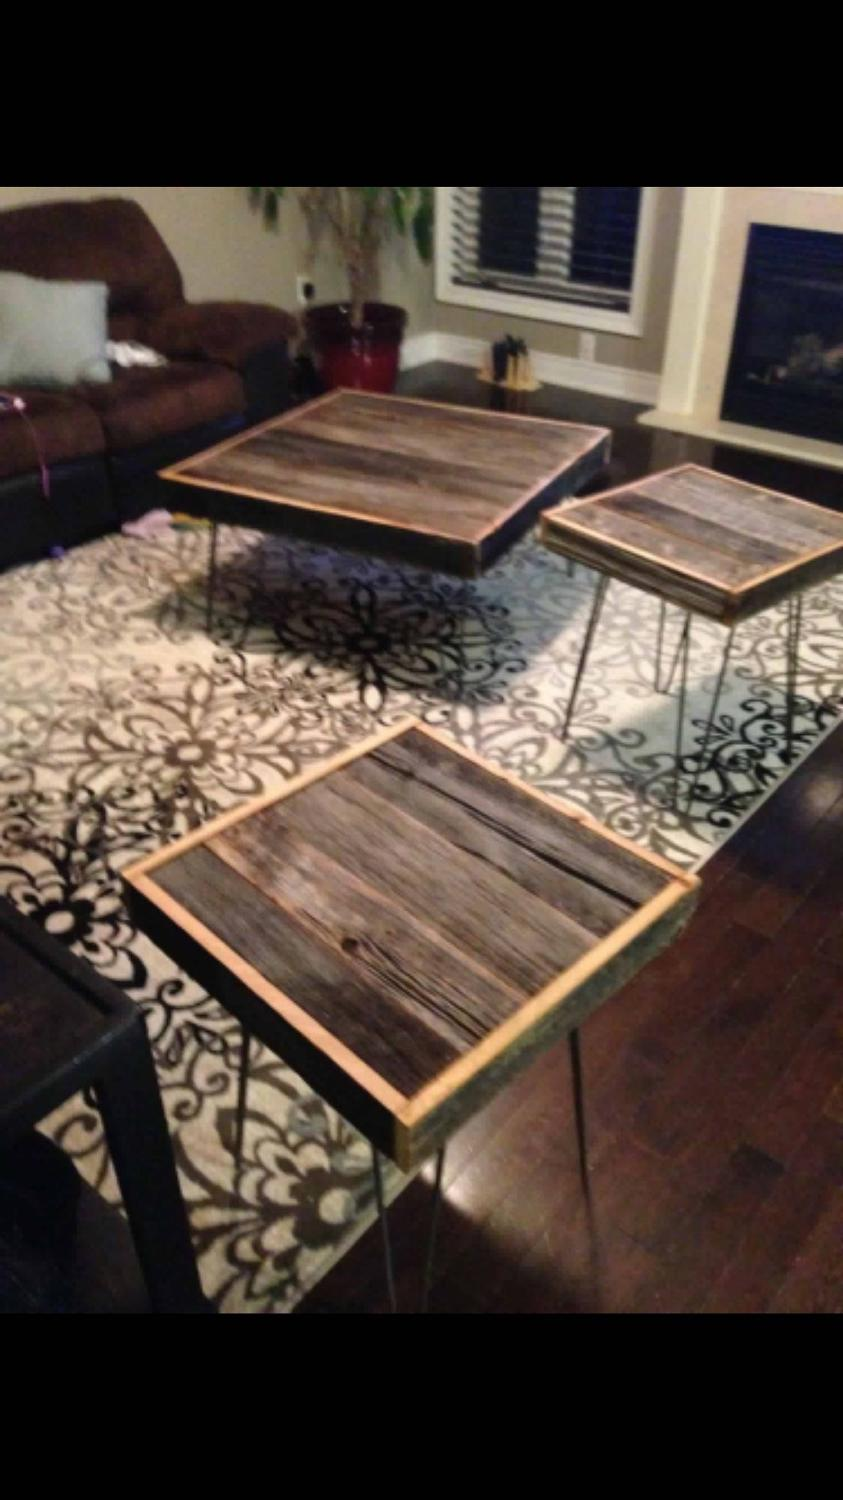 find more authentic rustic barn wood coffee table 2 end tables for sale at up to 90 off. Black Bedroom Furniture Sets. Home Design Ideas